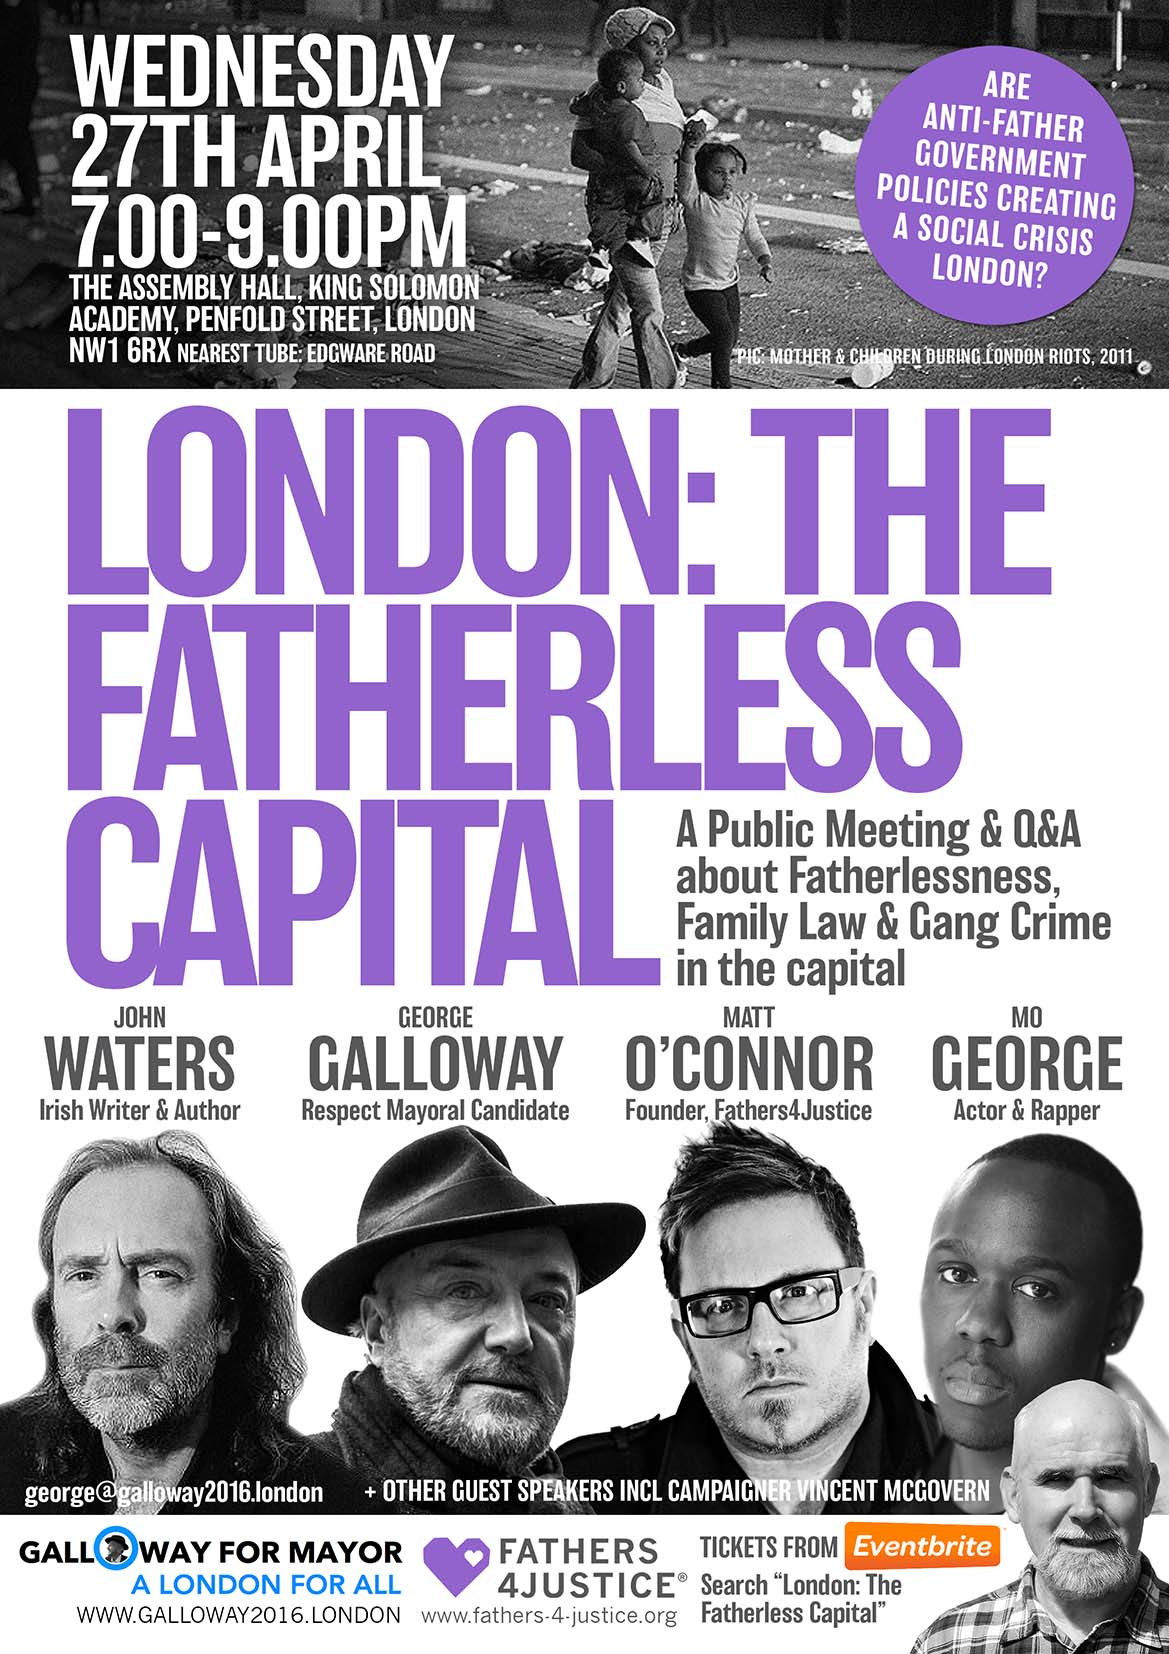 LONDON - THE FATHERLESS CAPITAL 3 MED